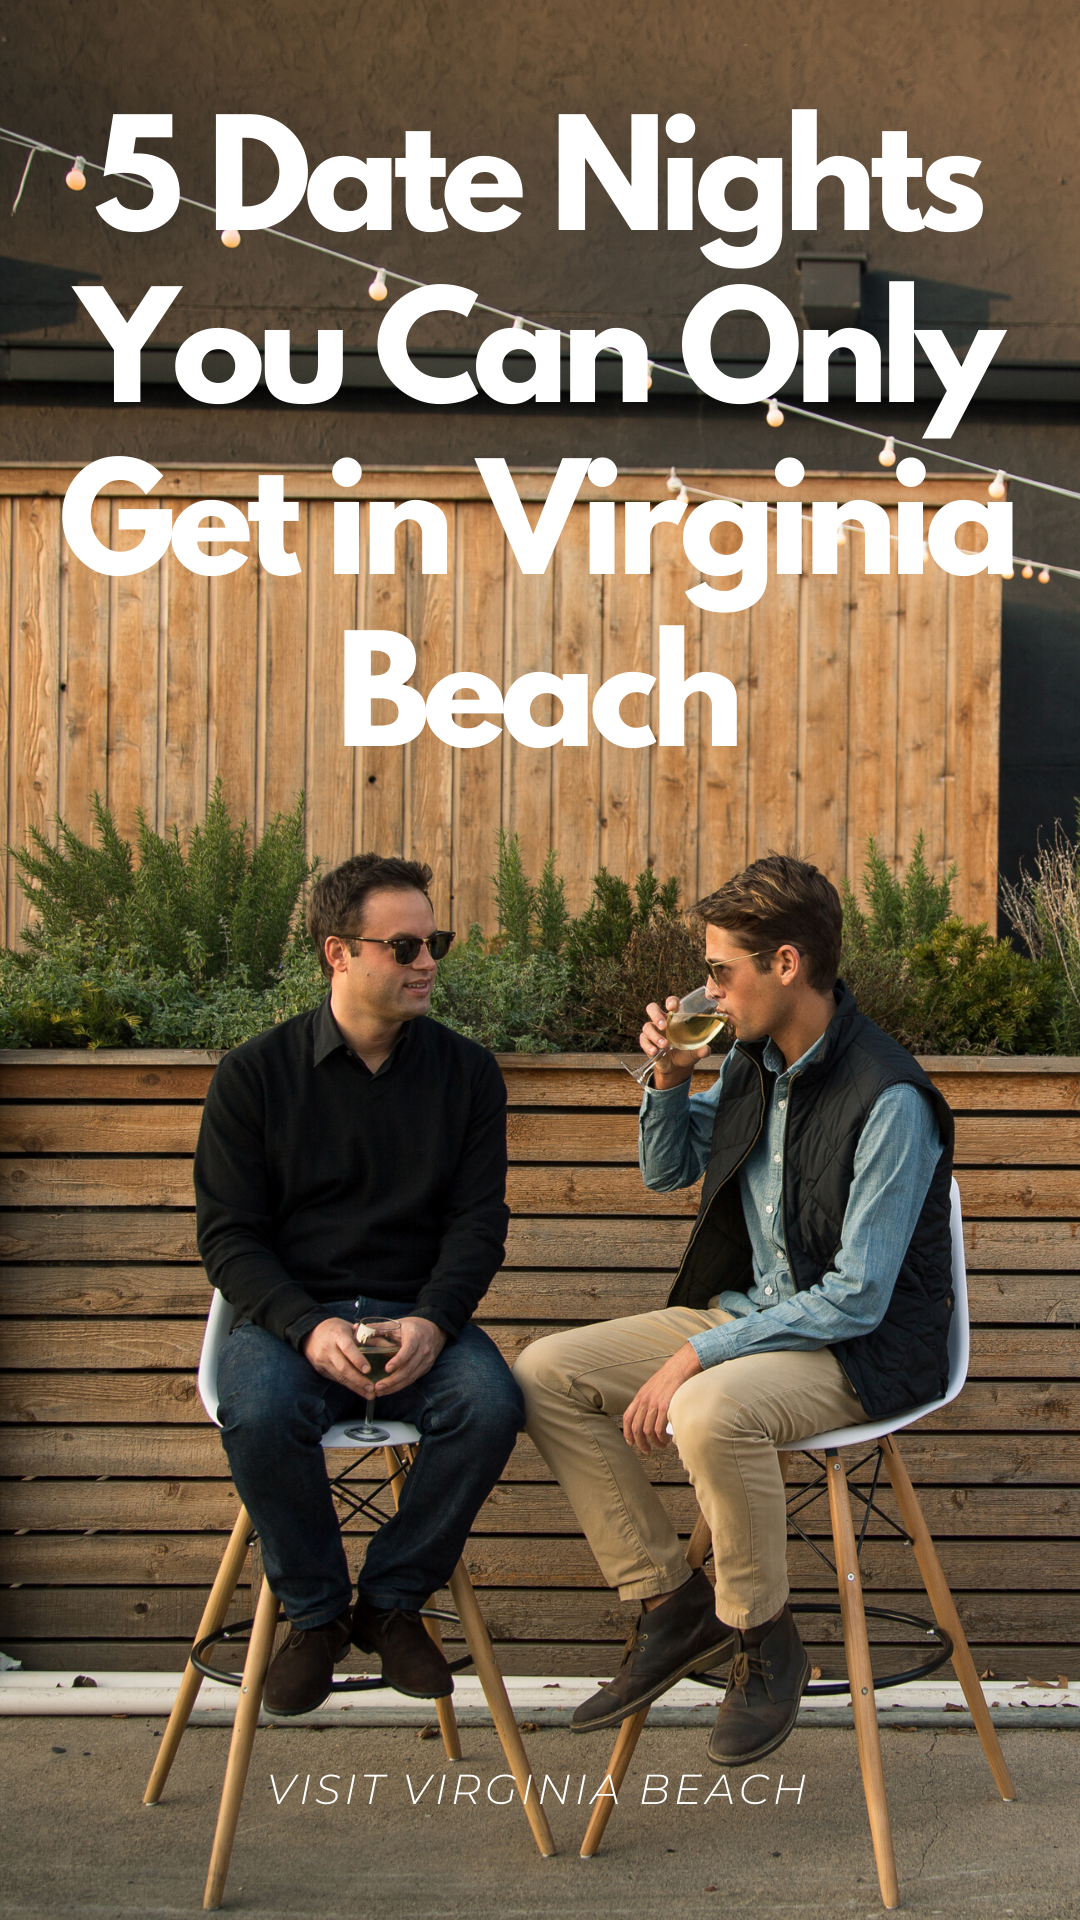 5 Date Nights You Can Only Get In Virginia Beach Virginia Beach Date Night Visit Virginia Beach